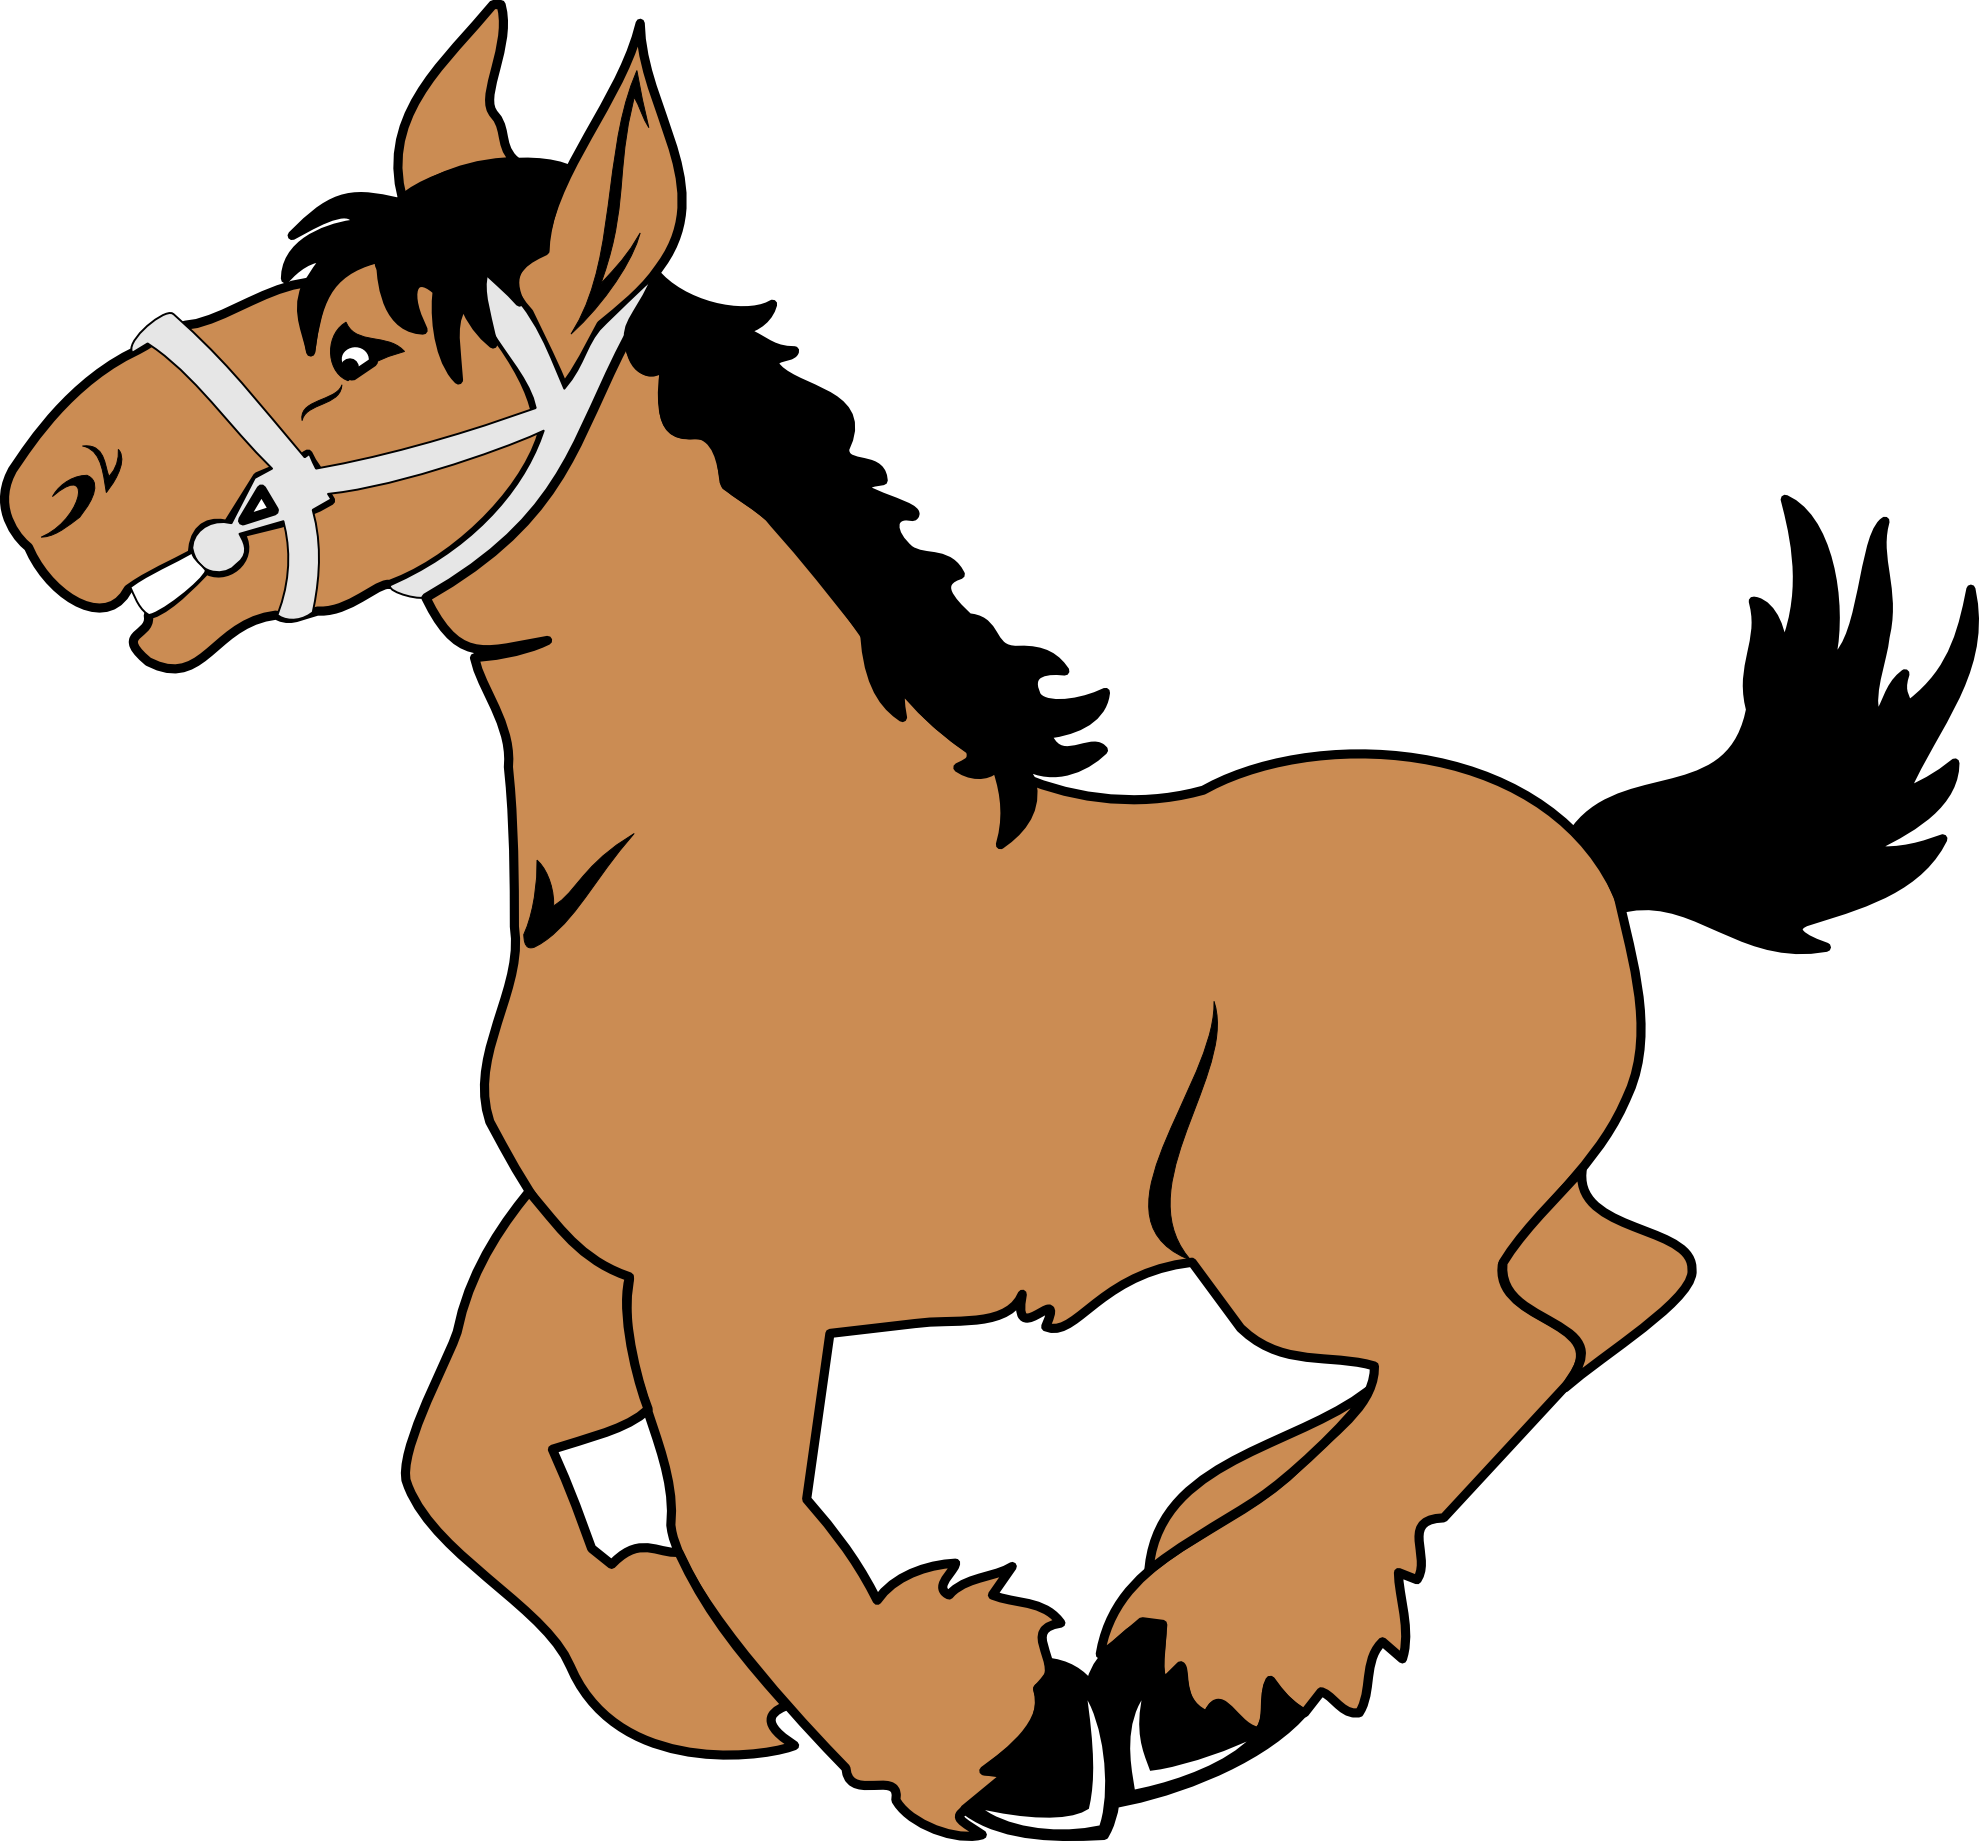 3 horse racing silhouette clipart ping.